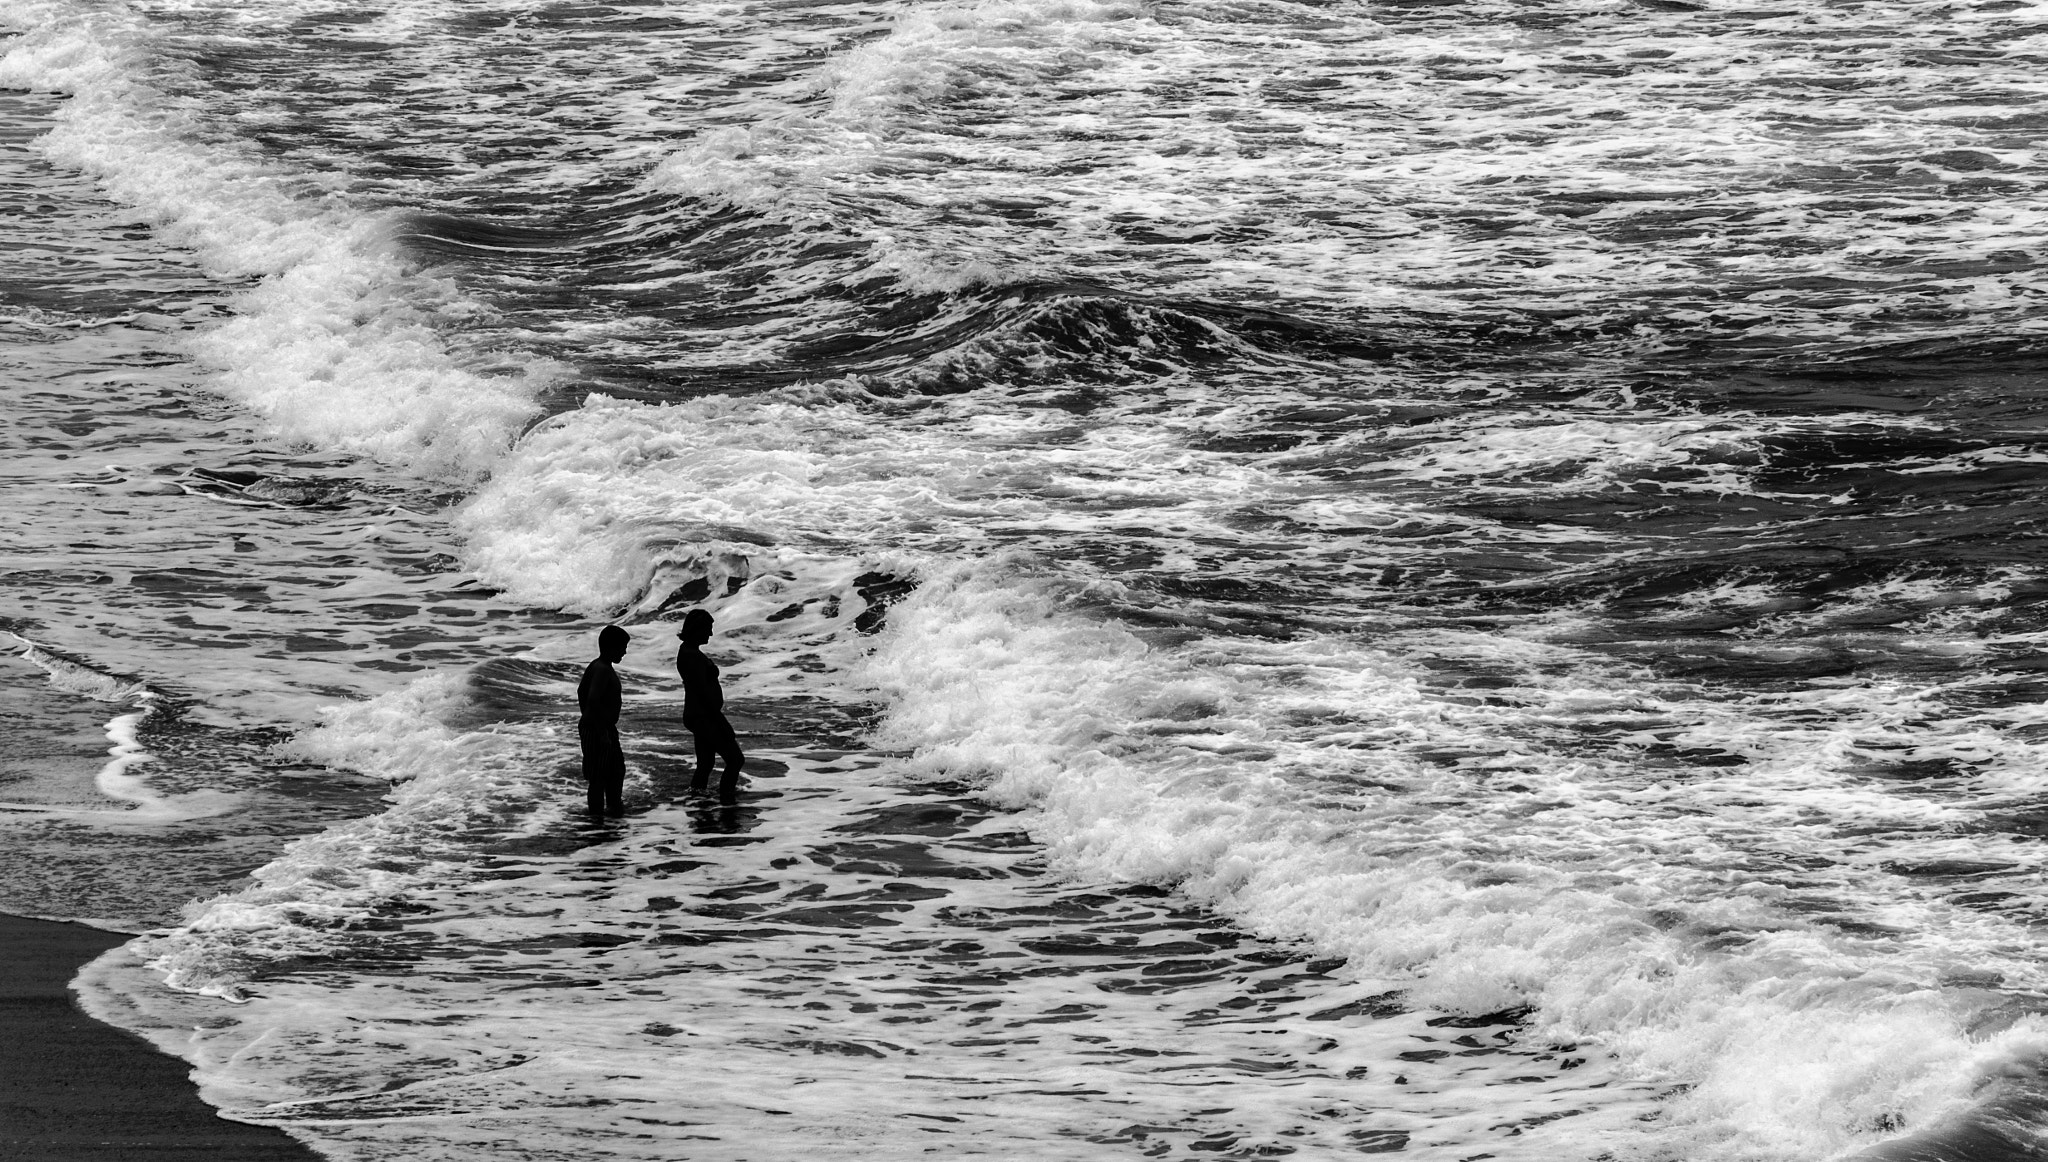 Photograph Swimming in the Ocean by Enrico Maria Crisostomo on 500px